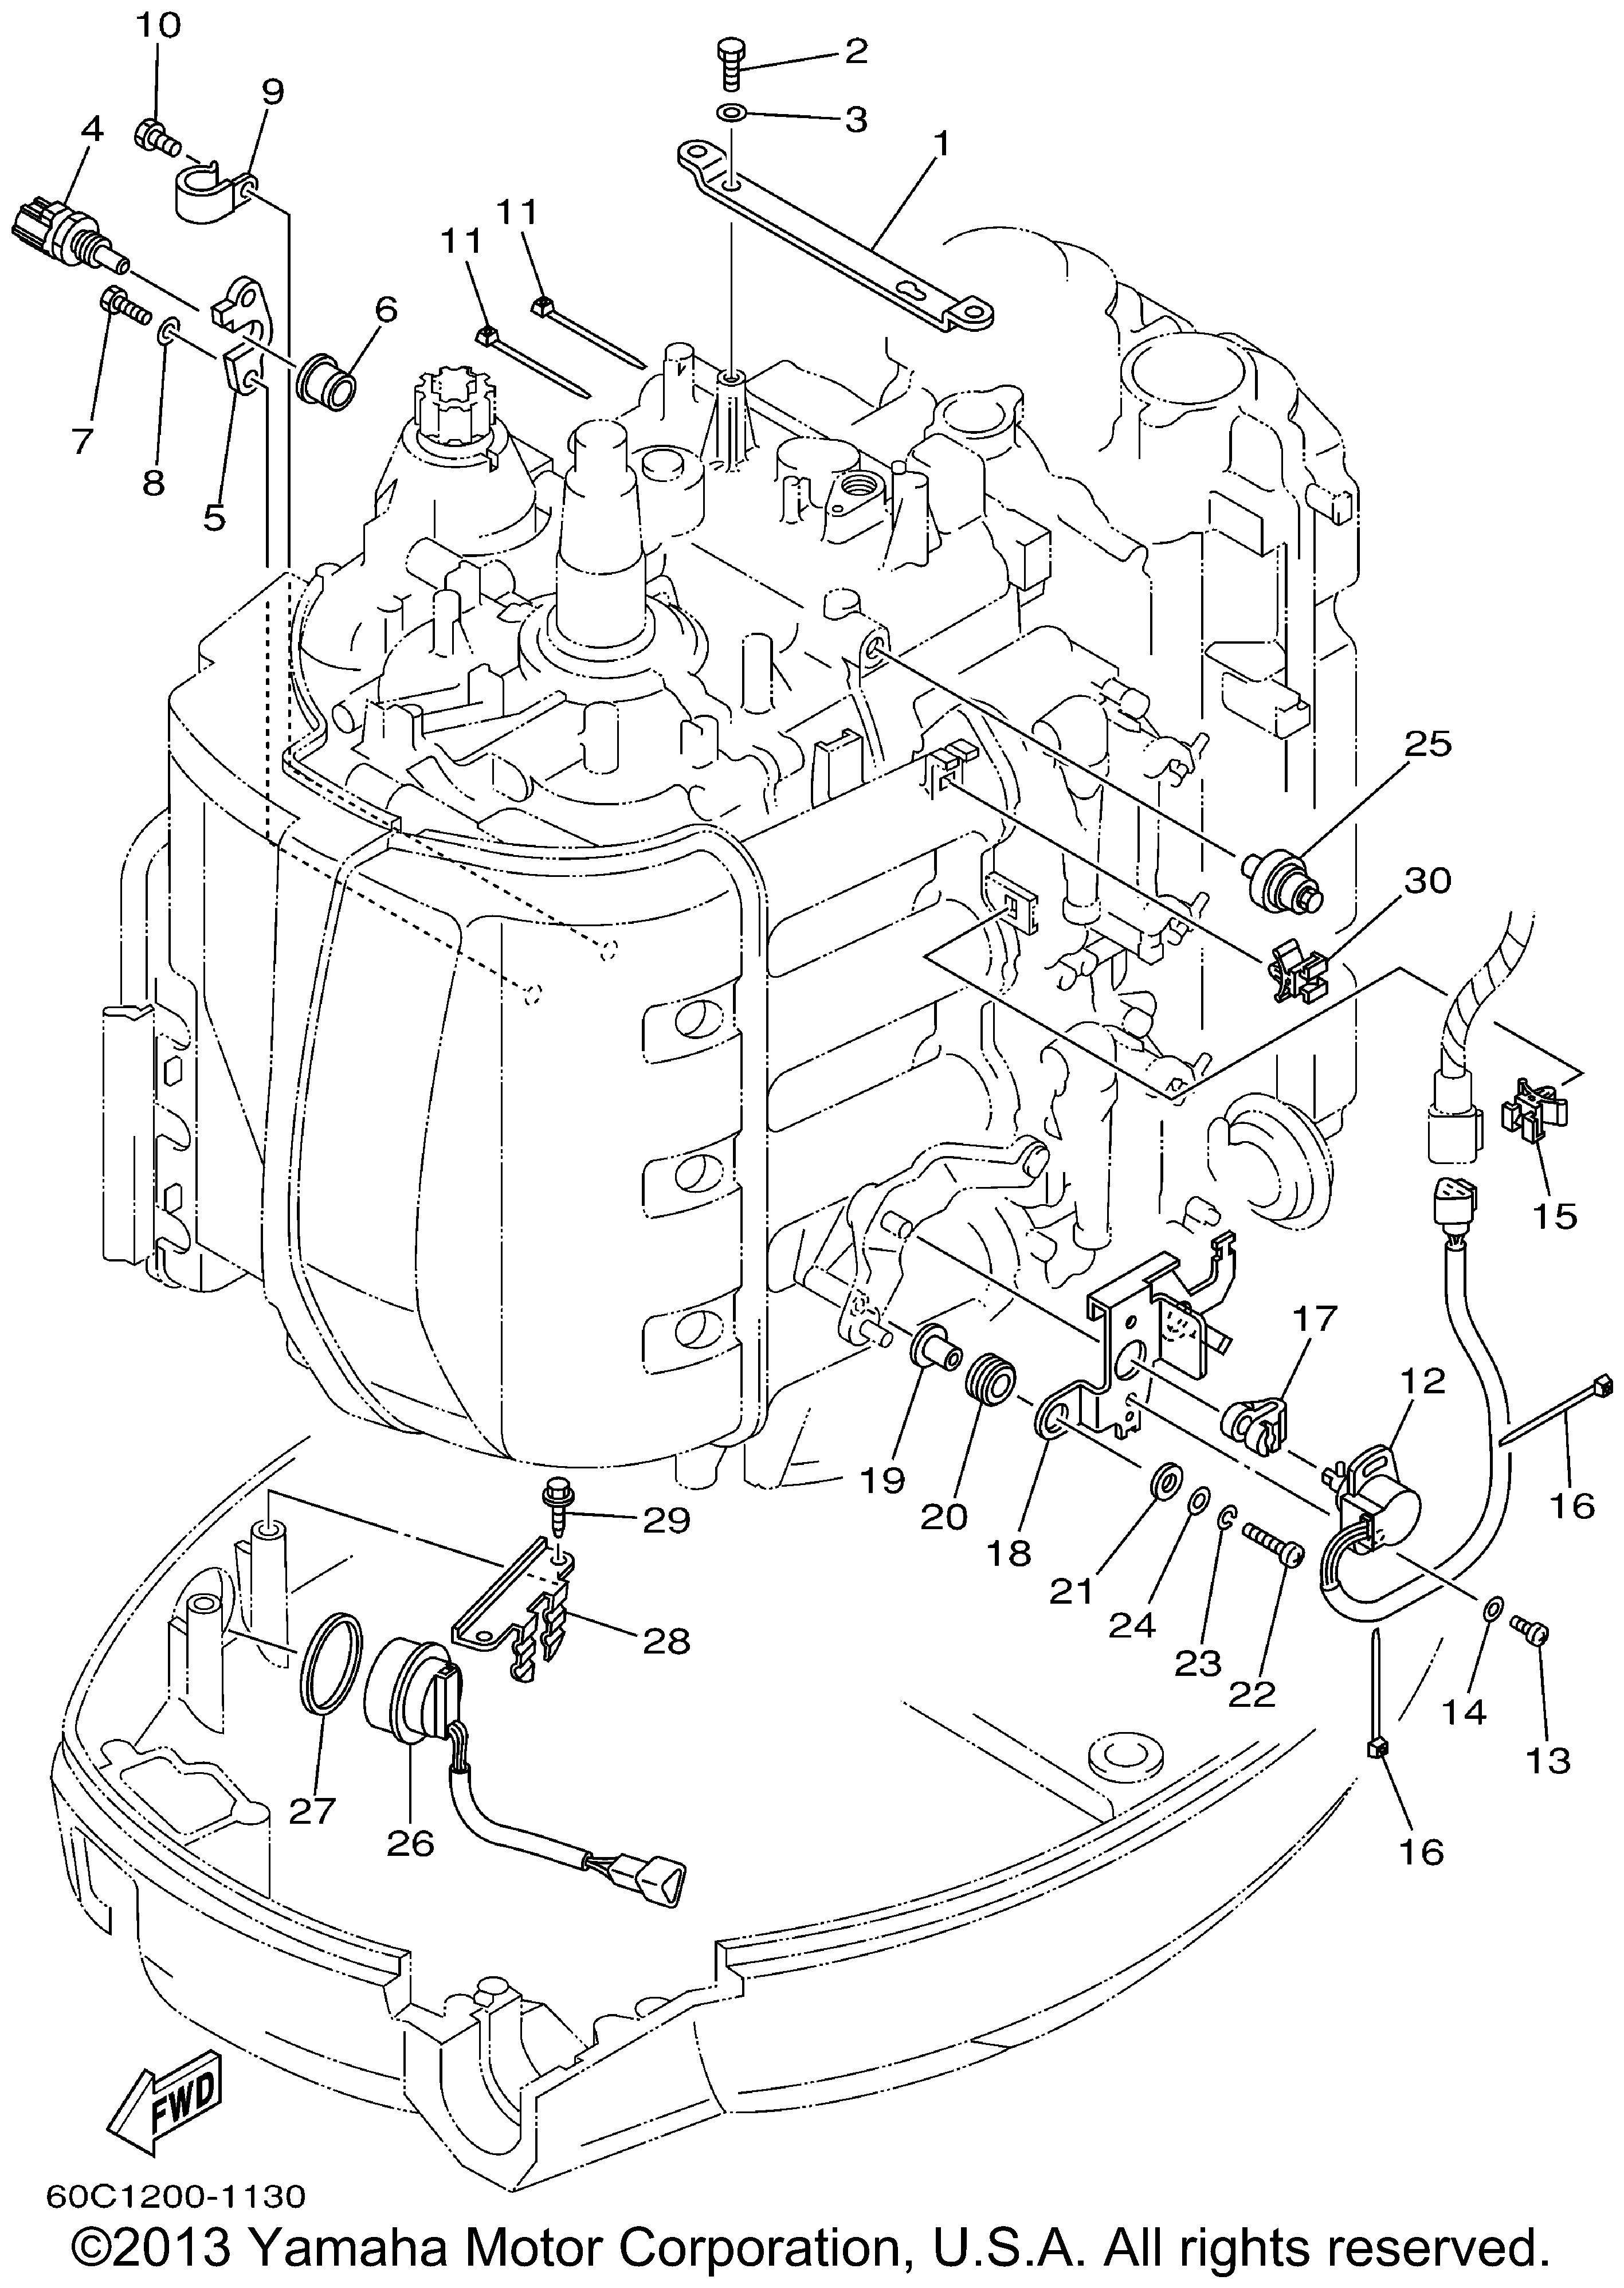 Yamaha F80 Outboard Wiring Diagram